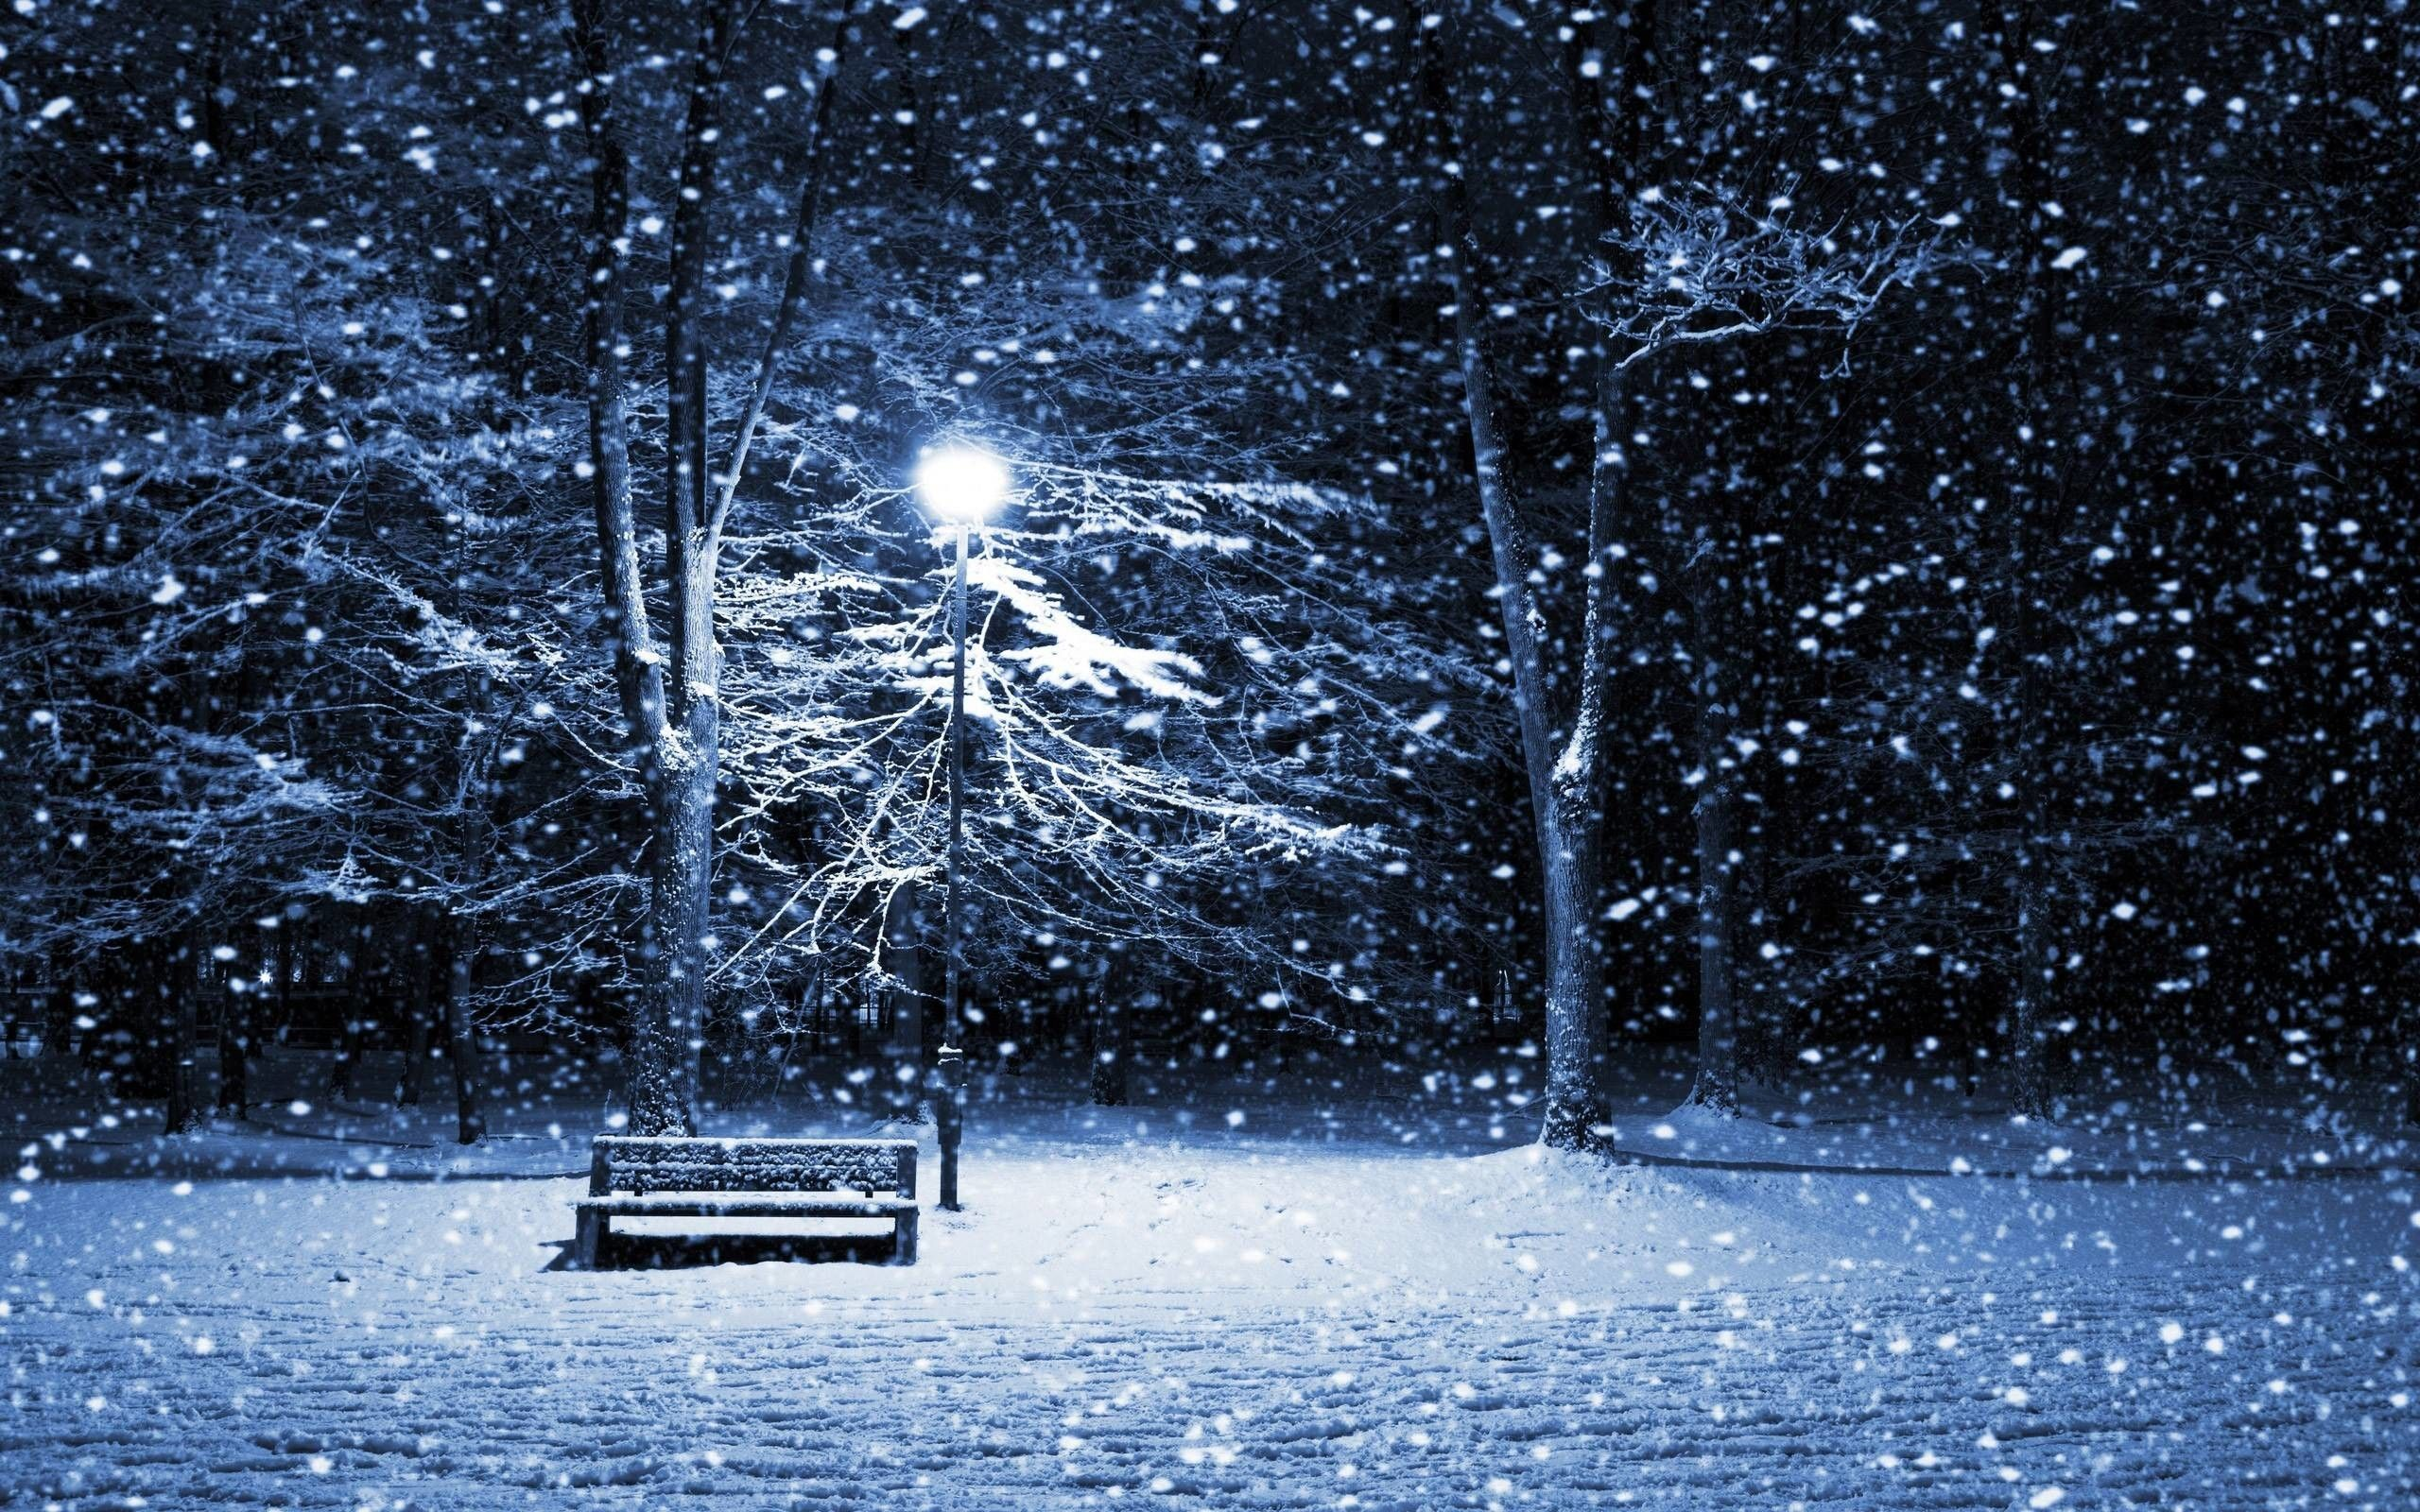 Snow Falling Wallpapers Moving Winter Wallpaper Hd Winter Wallpaper Winter Landscape